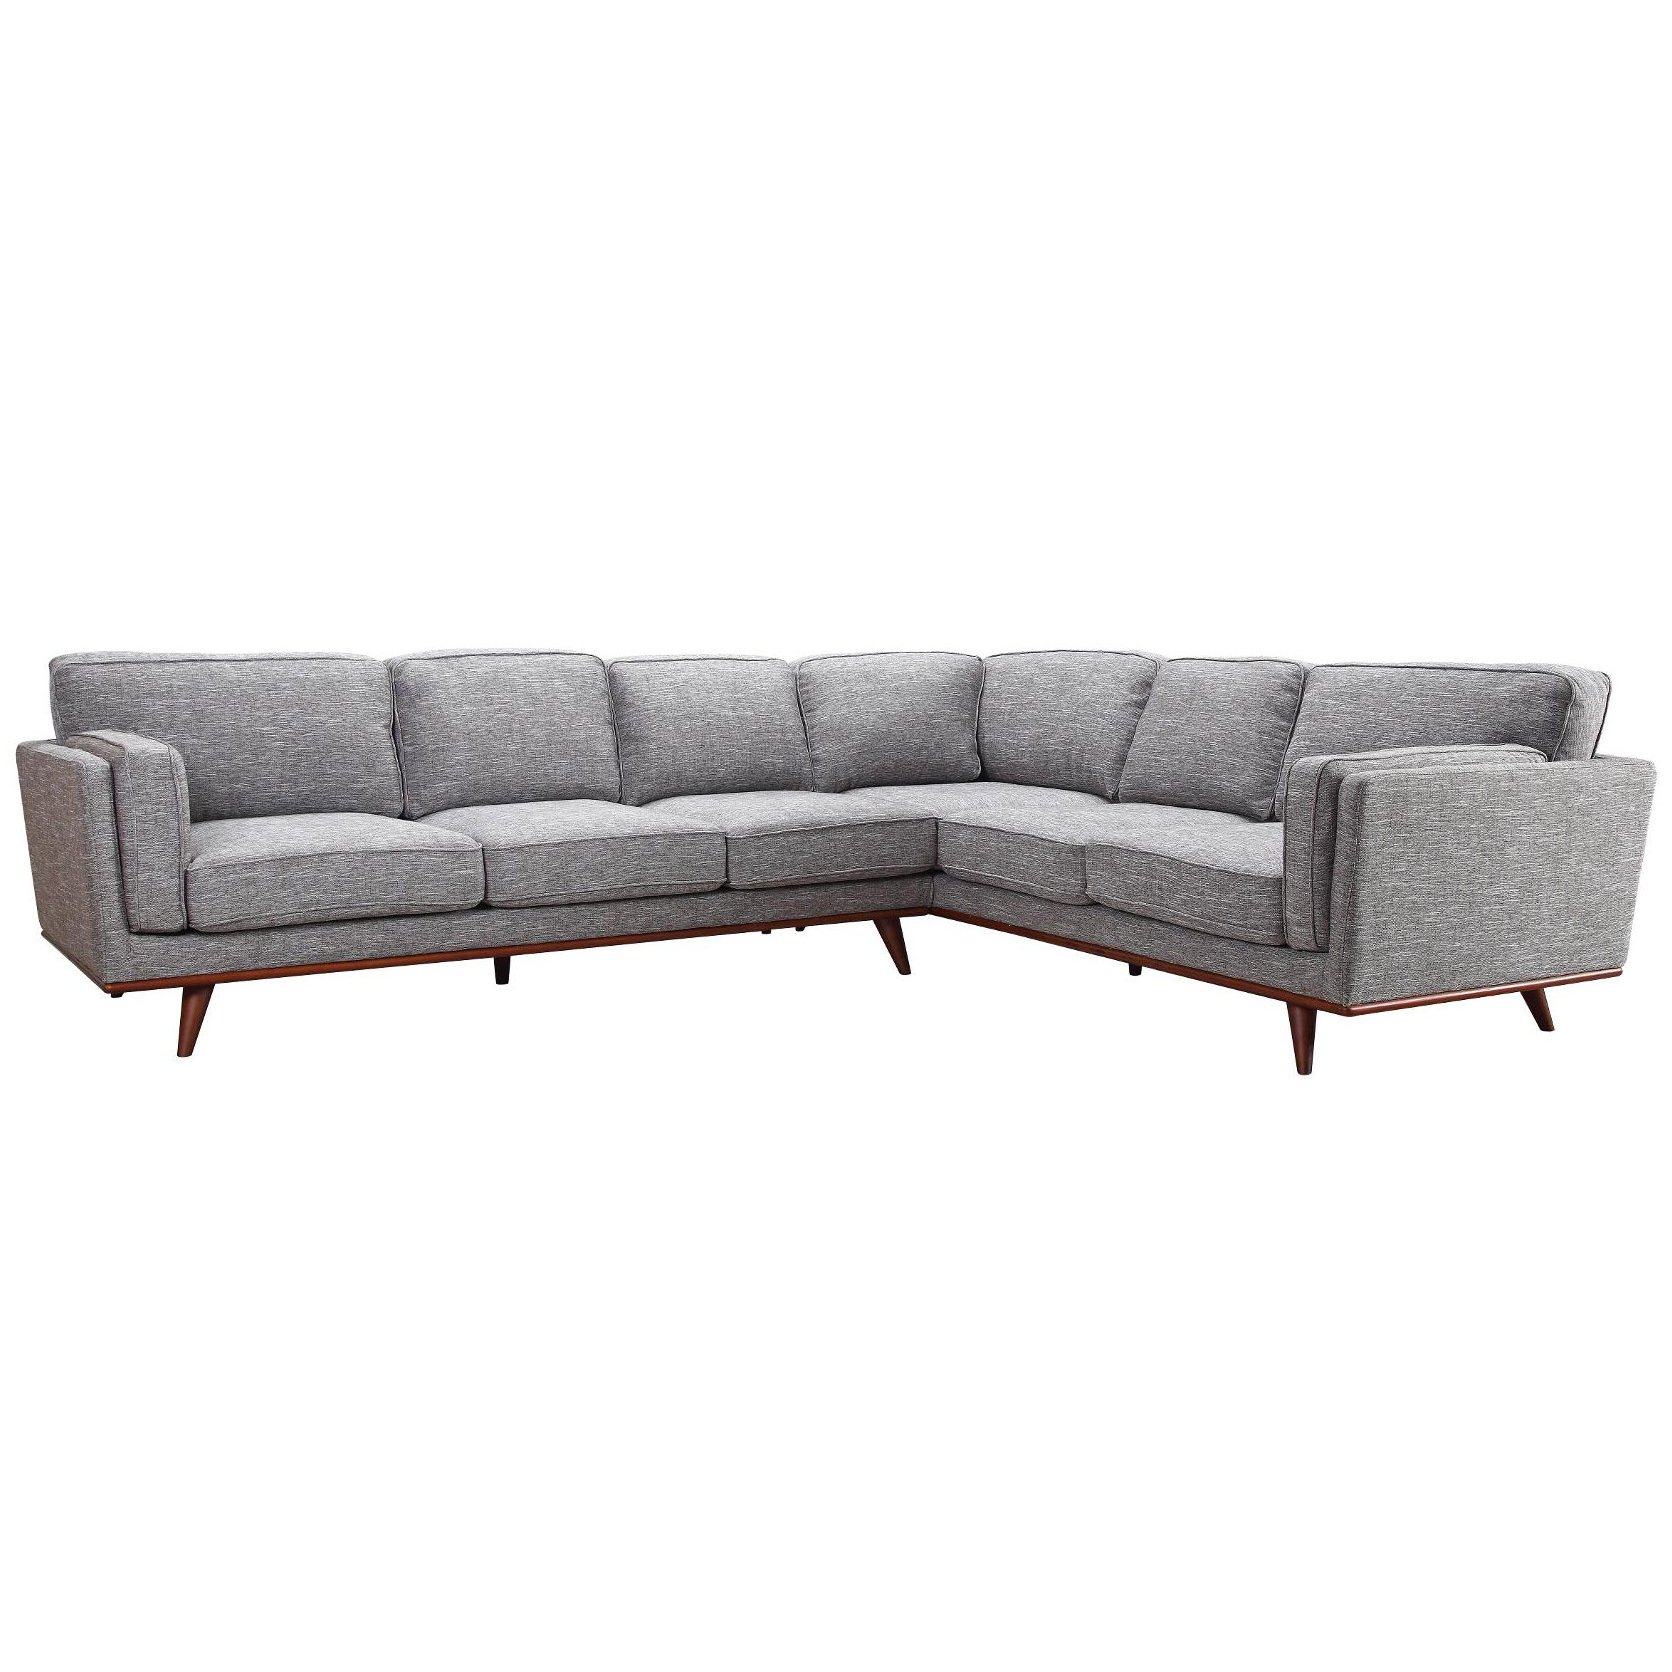 Small gray chaise sofa view full size of excellent sofa for Chaise couches for sale